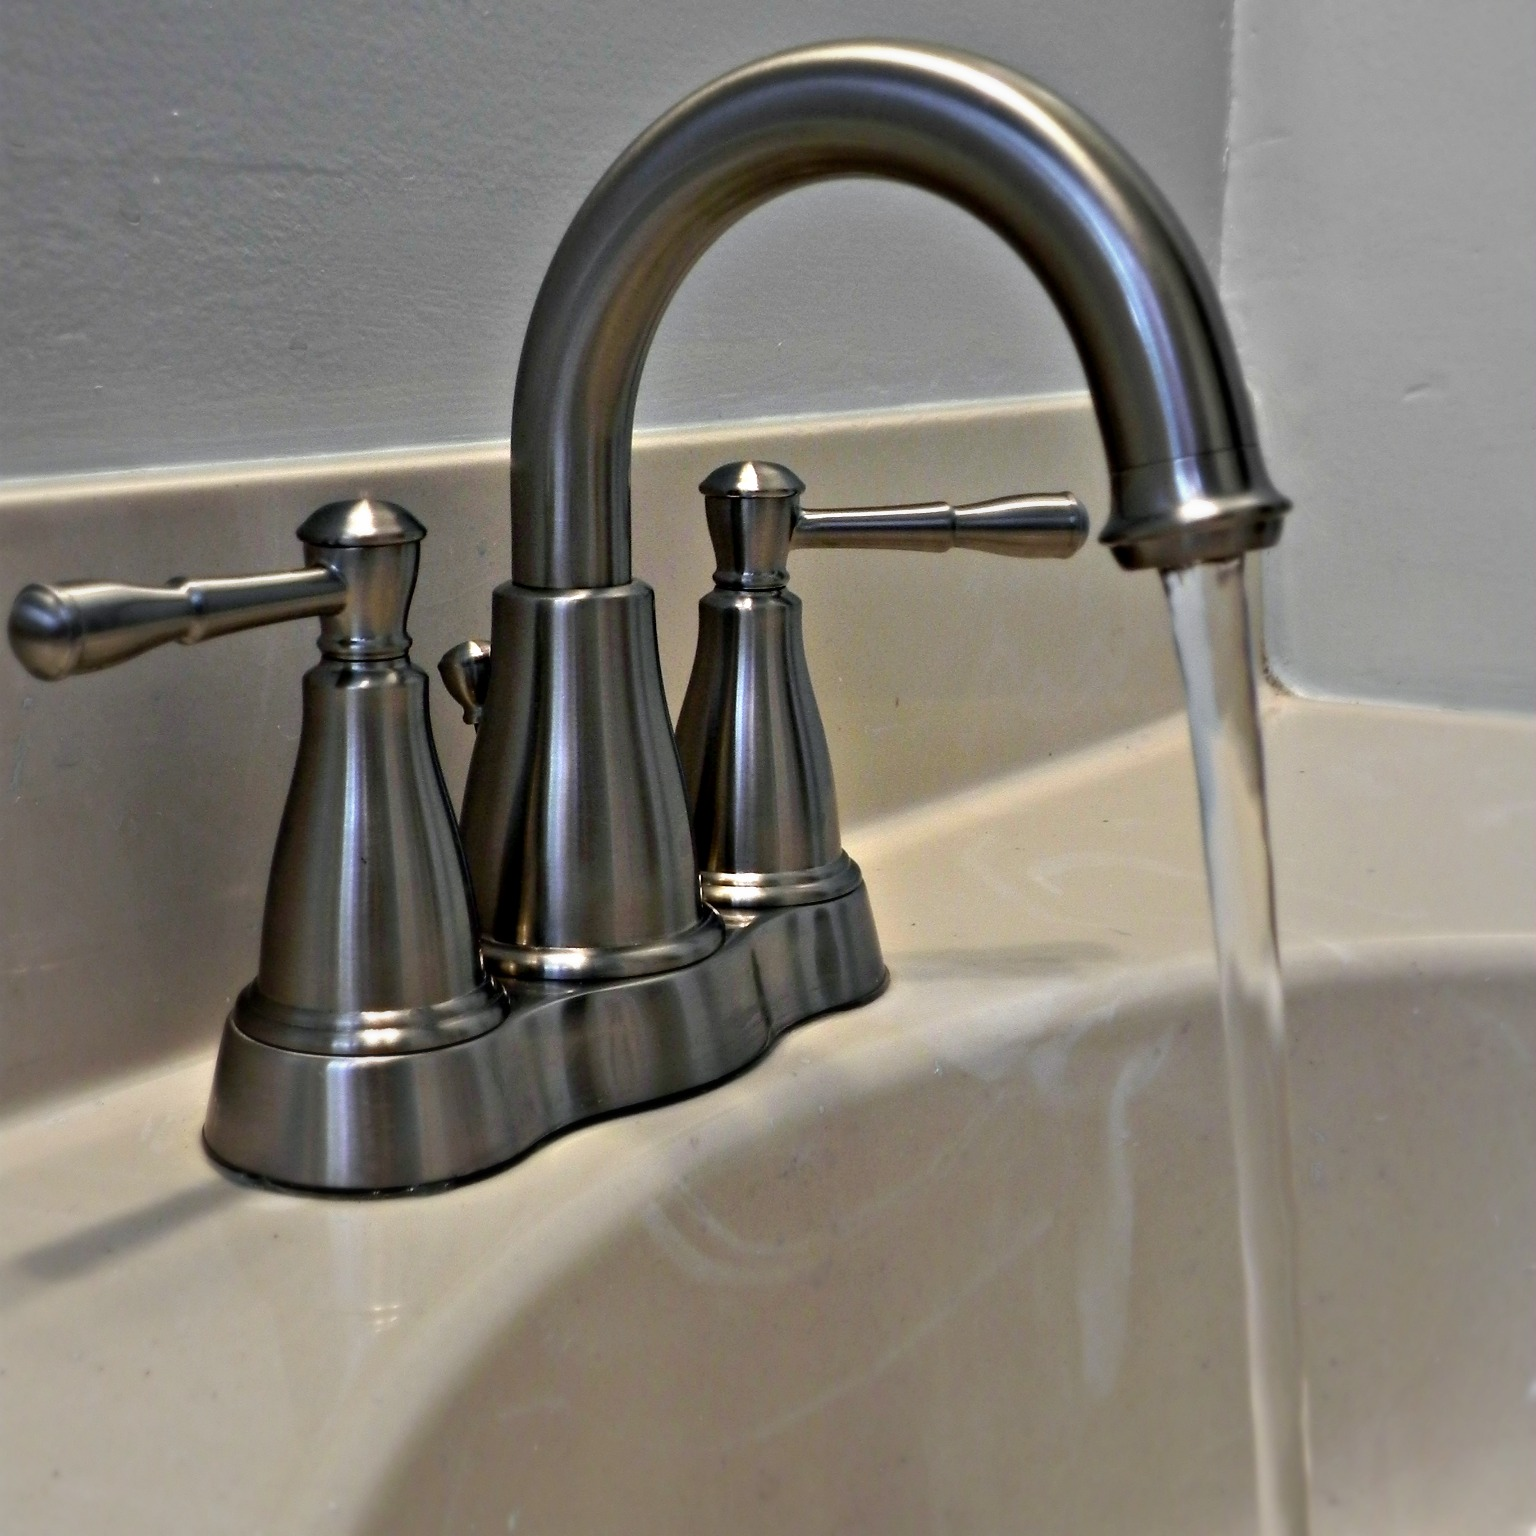 Delta Bathroom Sink Faucet Repair Kit